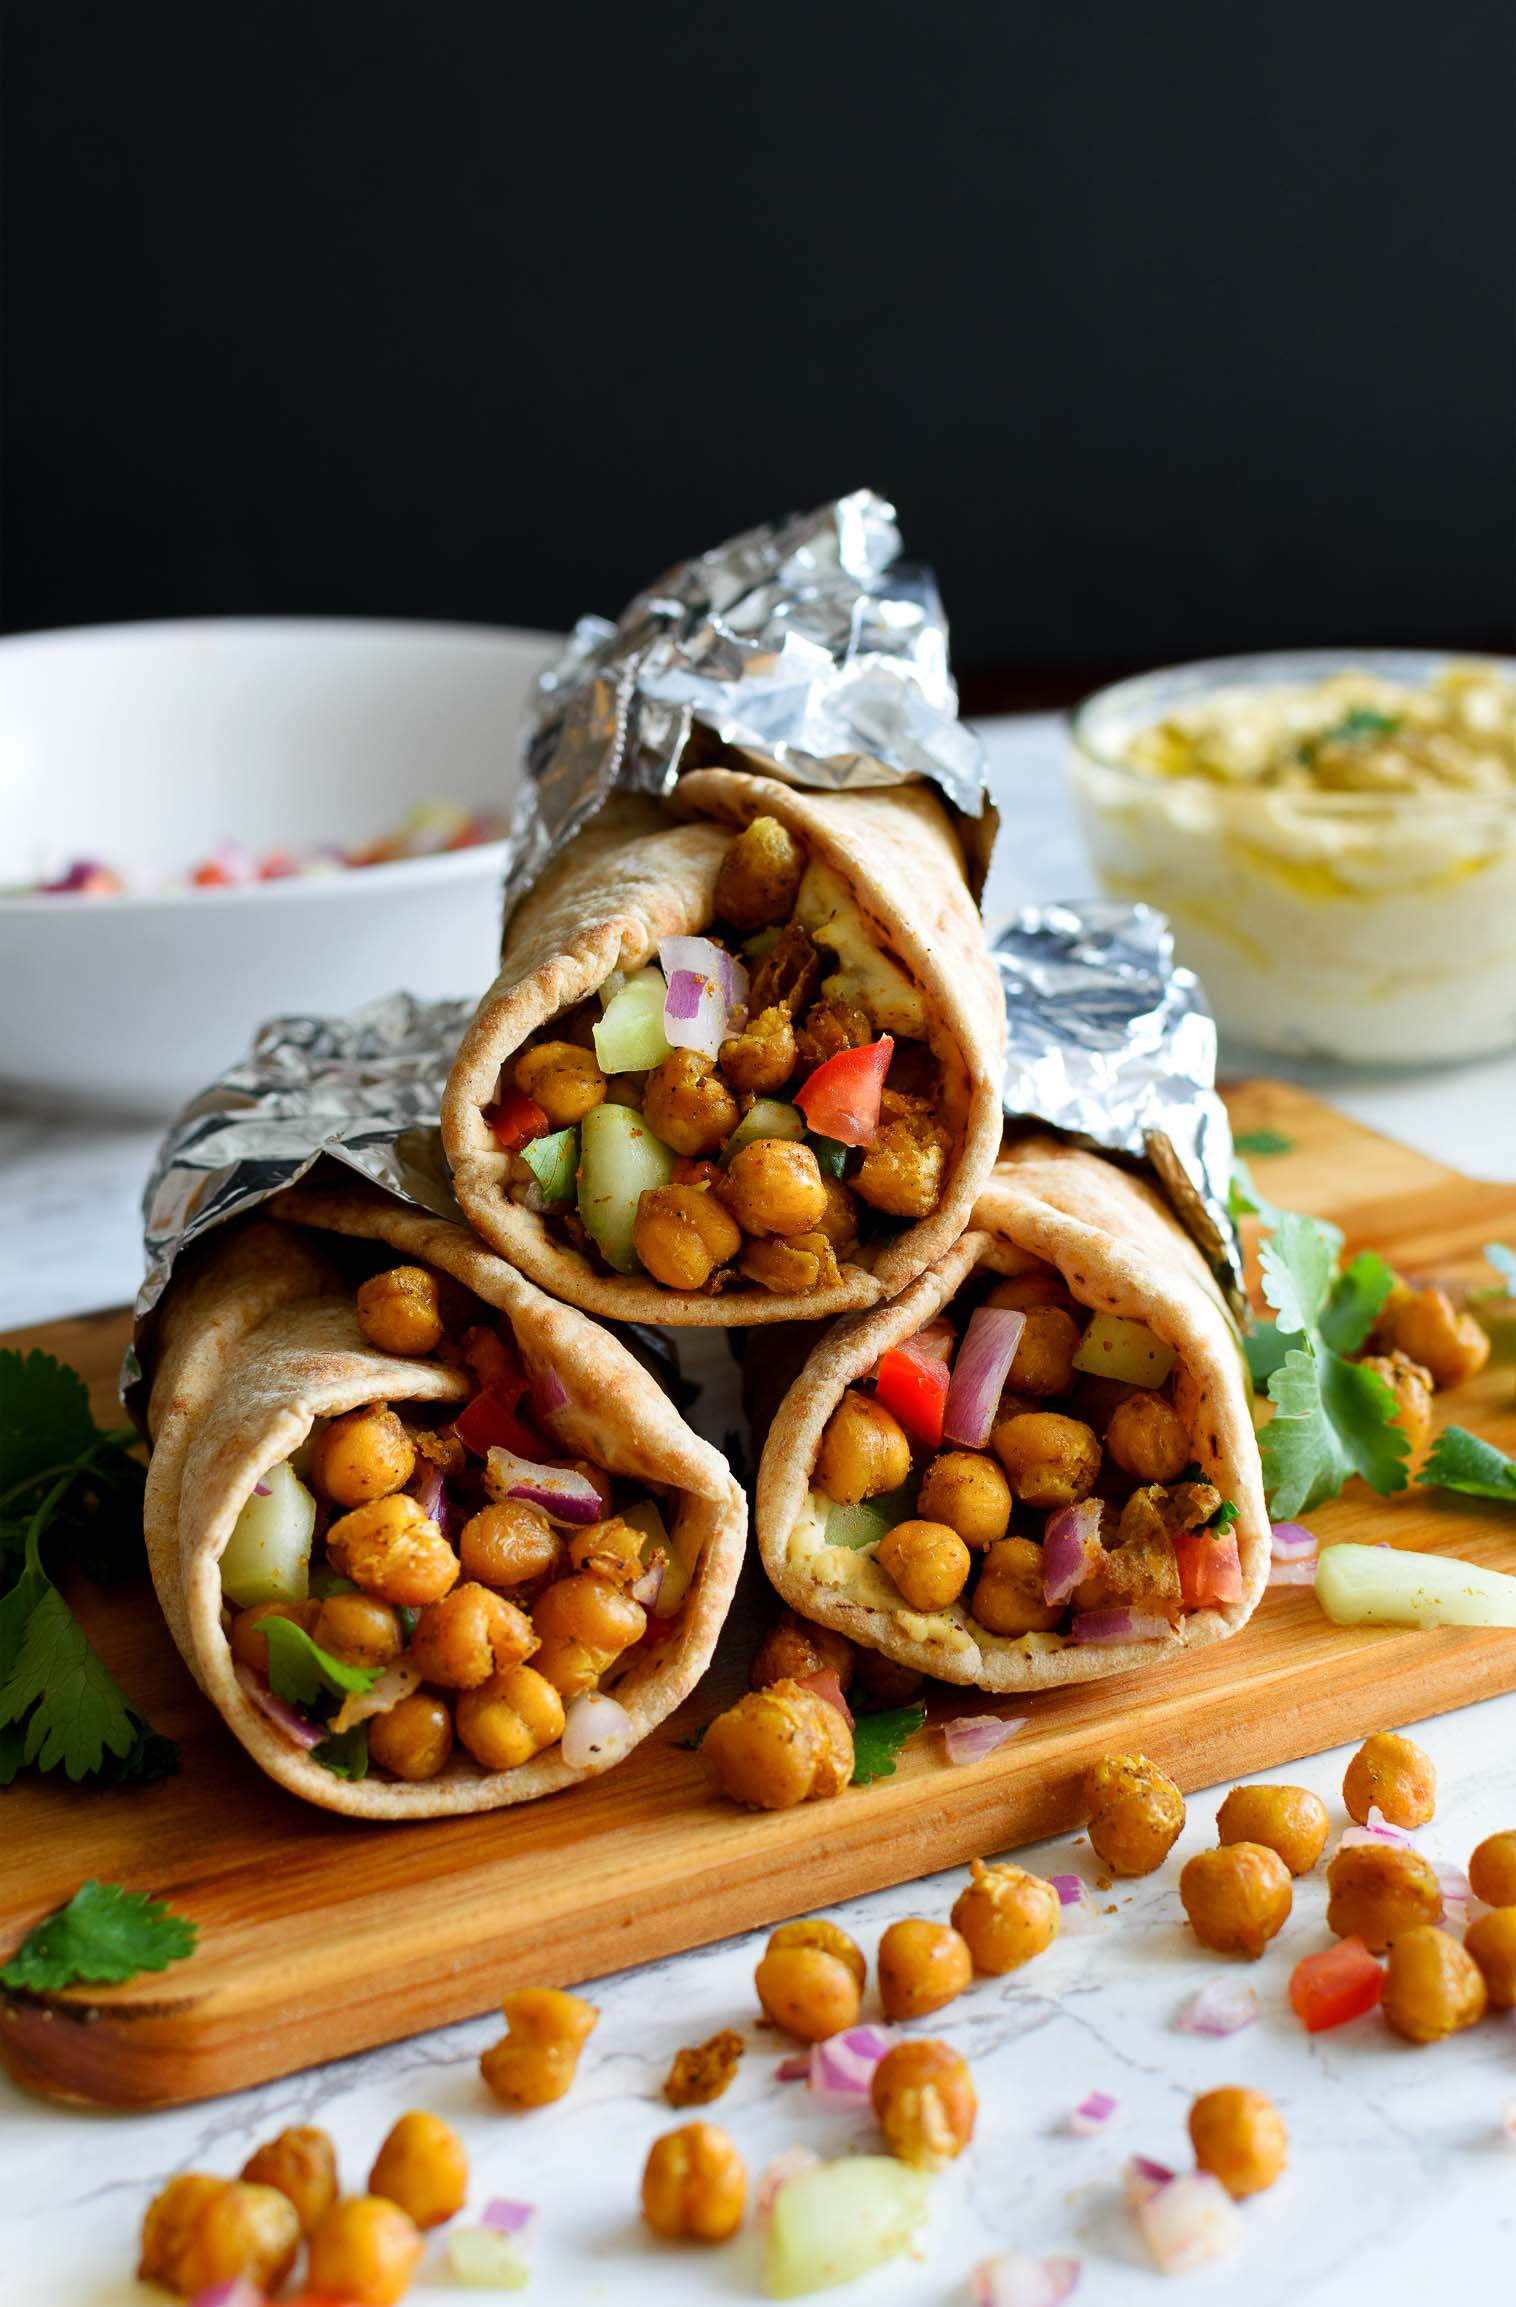 Roasted Chickpeas Hummus Wrap - Pepper Delight #pepperdelightblog #wrap #roll #vegetarianwrap #chickpeaswrap #hummuswrap #pitawrap #hummus #classichummus #appetizer #christmas #celebration #party #gameday #vegetarian #arabic #mediterranean #dip #glutenfree #garammasala #chickpeas #meatlessrecipe